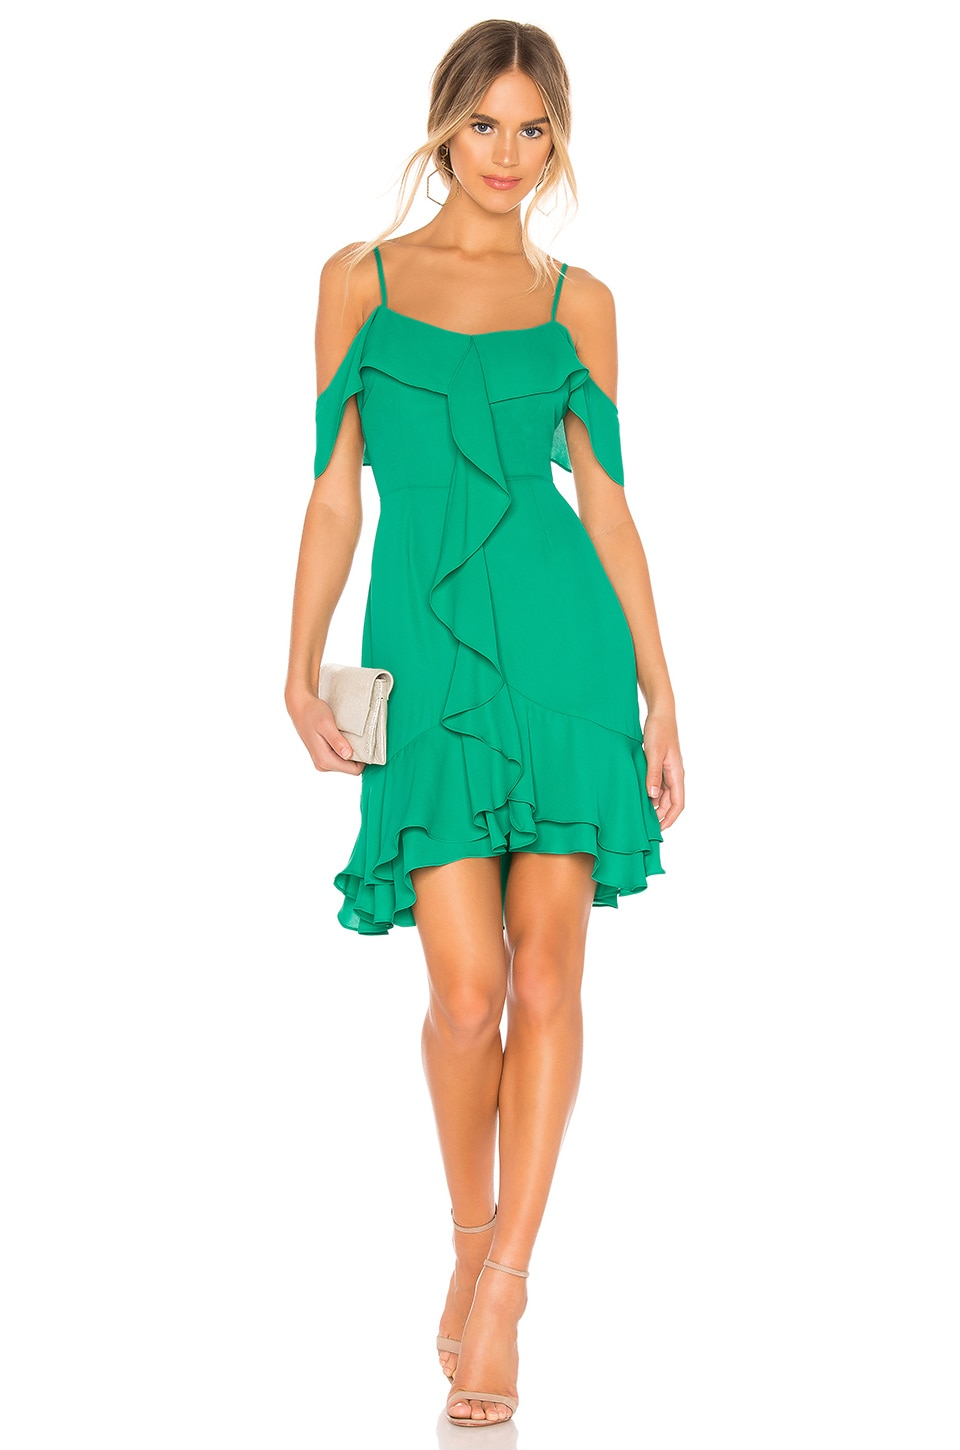 BB Dakota RSVP by BB Dakota Make An Entrance Dress in Pepper Green